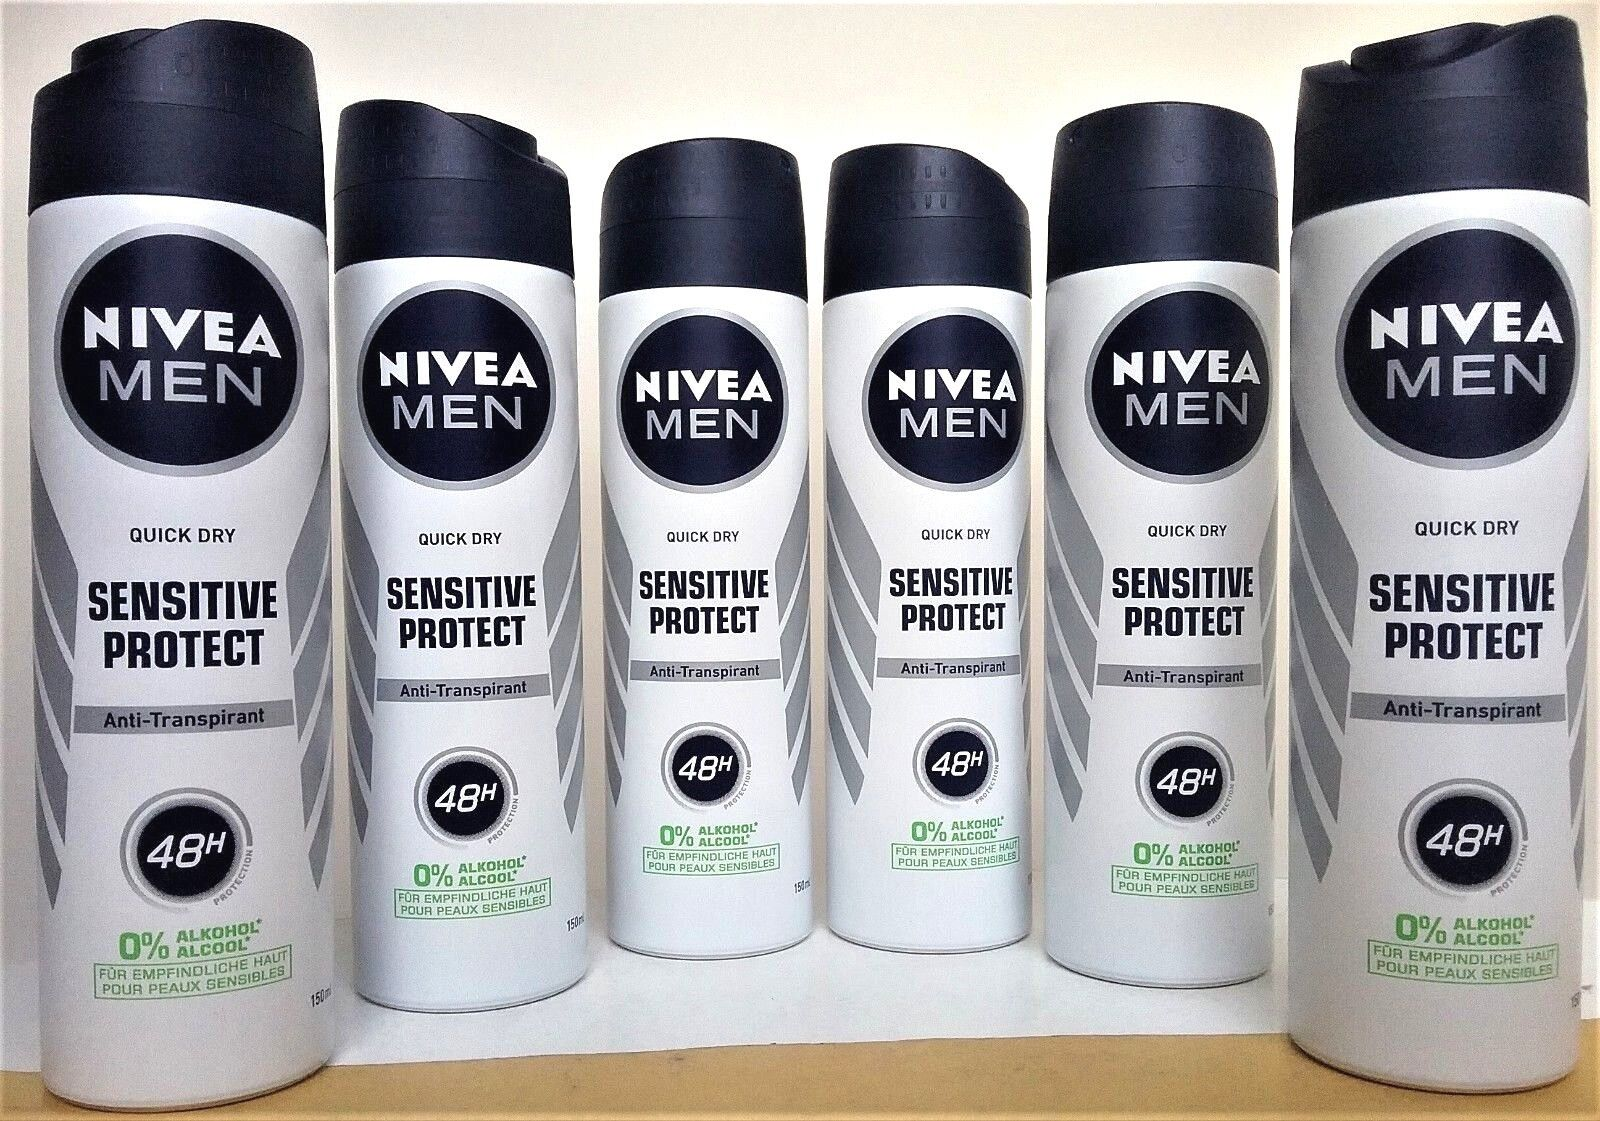 NIVEA MEN Anti-Transpirant SENSITIVE PROTECT Deo Spray  6 x150 ml